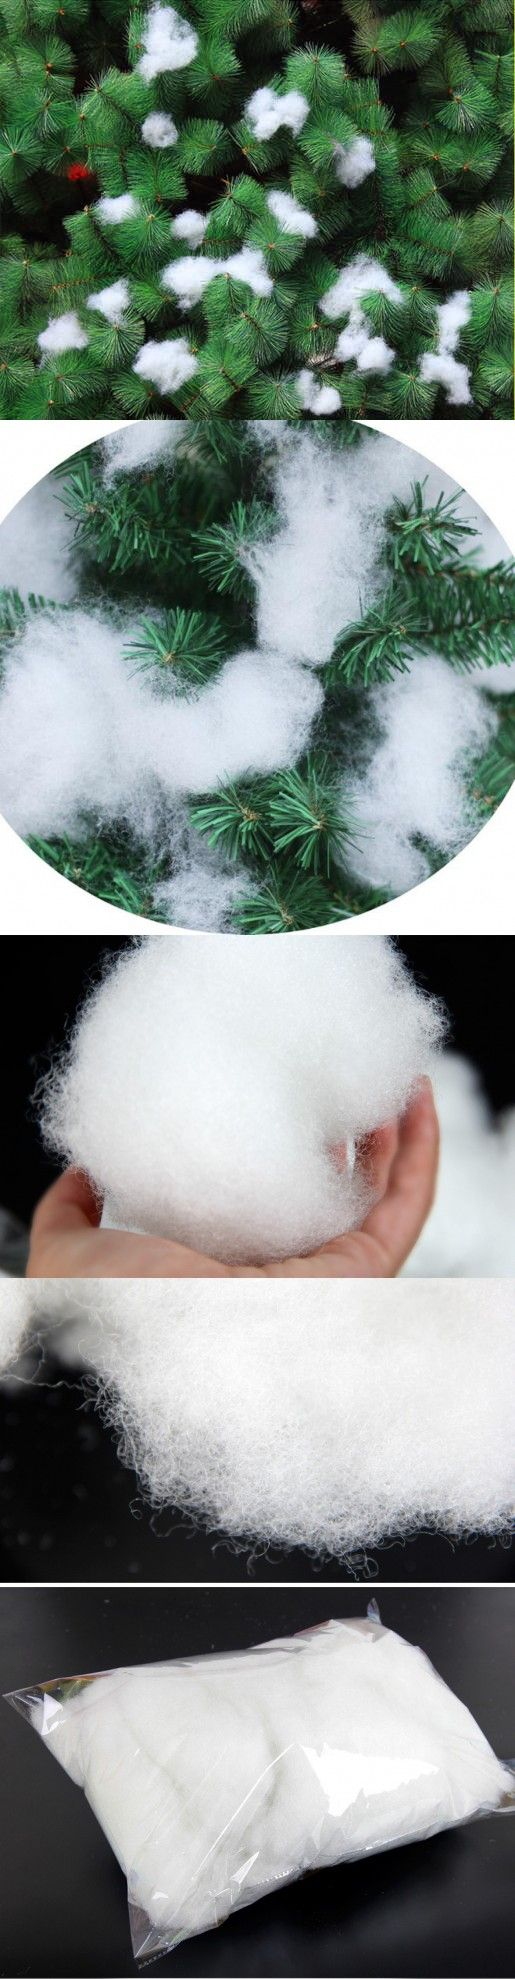 1000 ideas about artificial snow on pinterest snow for Artificial snow decoration